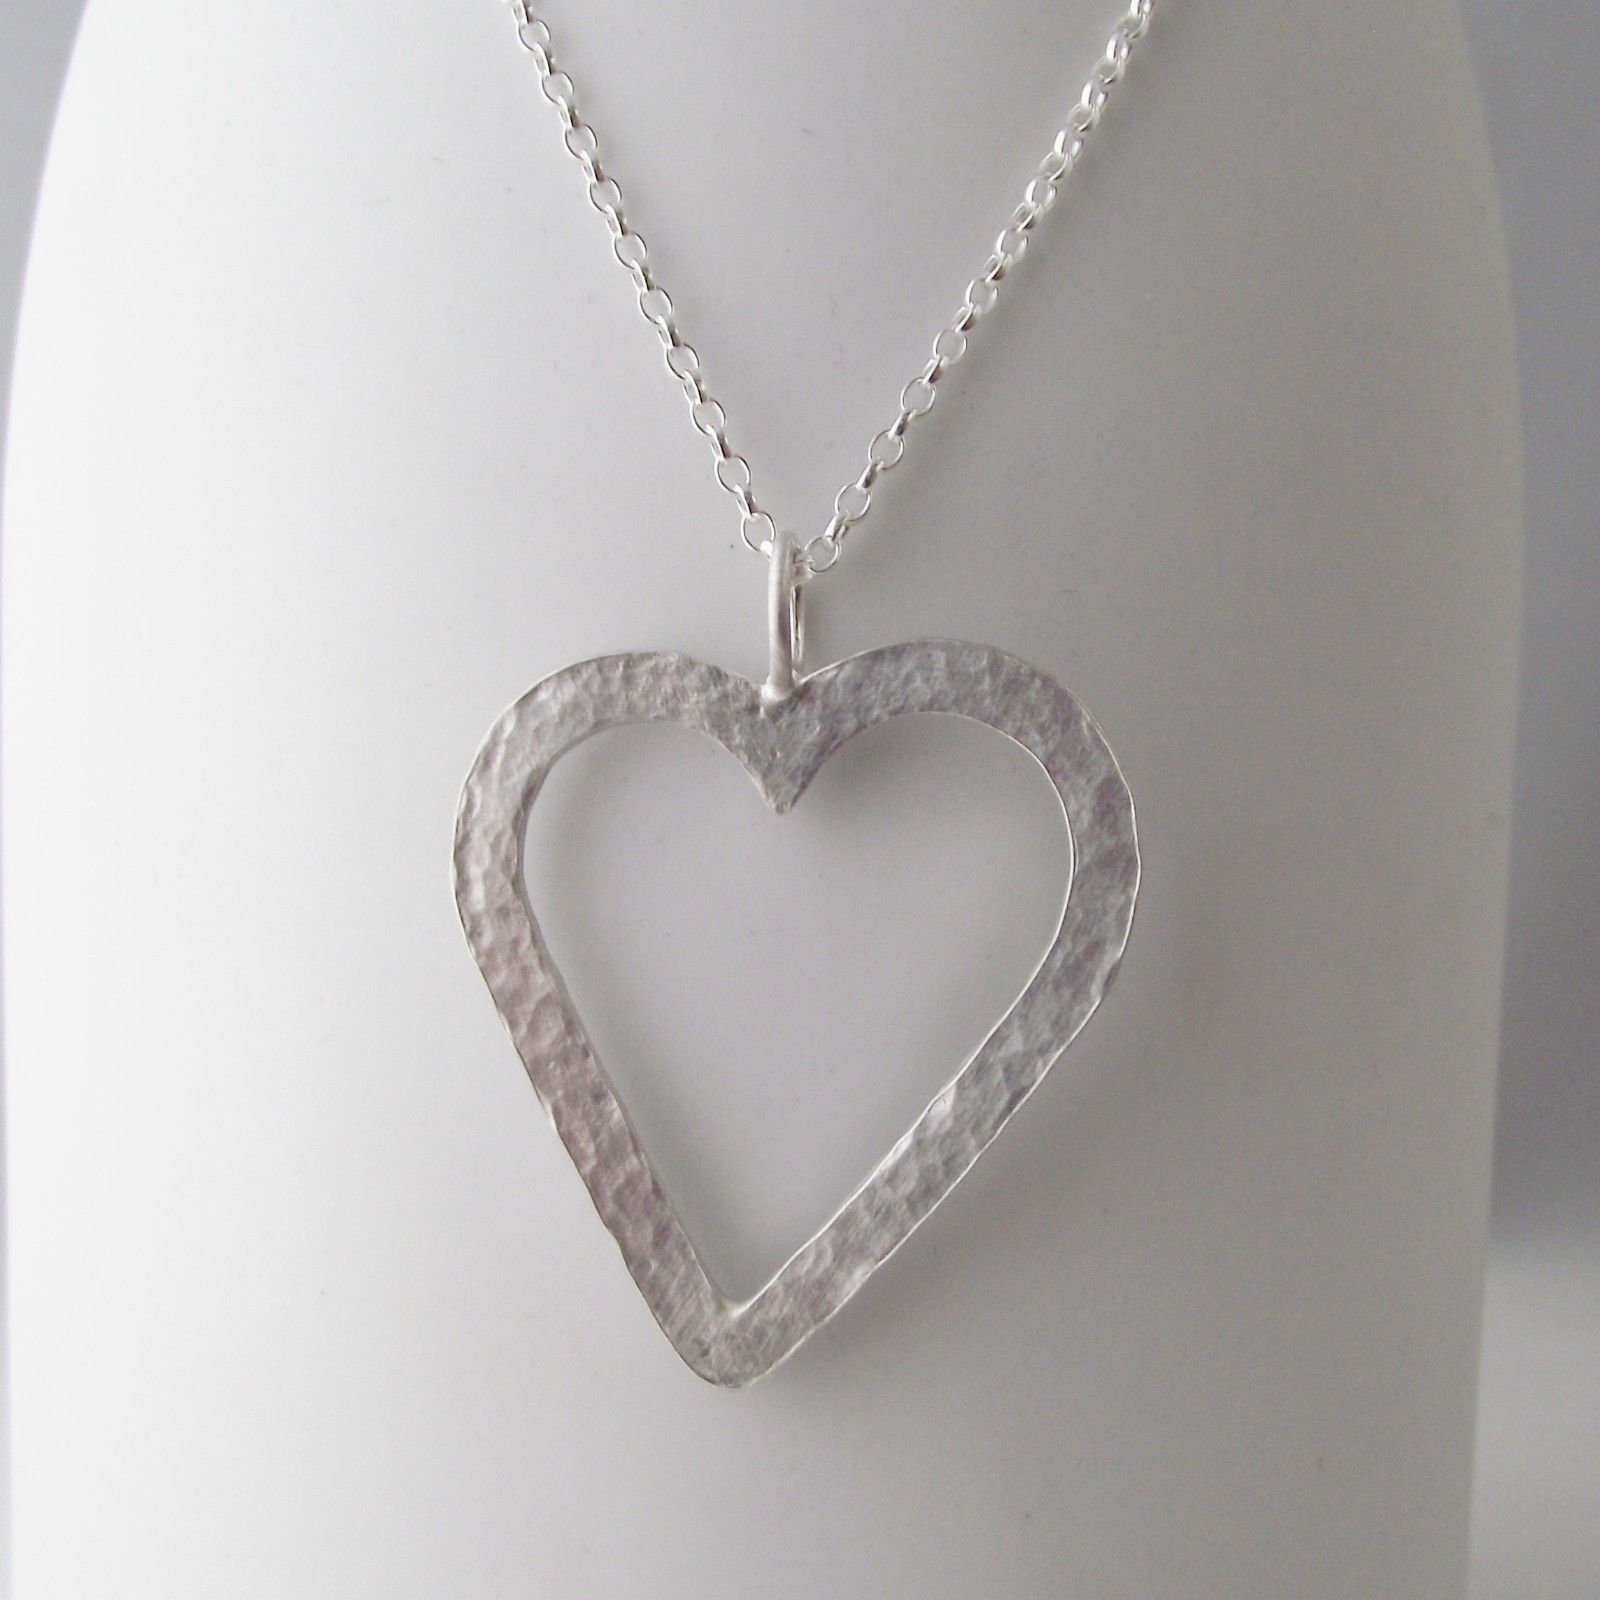 Stunning necklace handmade sterling silver hammer finish large heart stunning necklace handmade sterling silver hammer finish large heart pendant mozeypictures Gallery